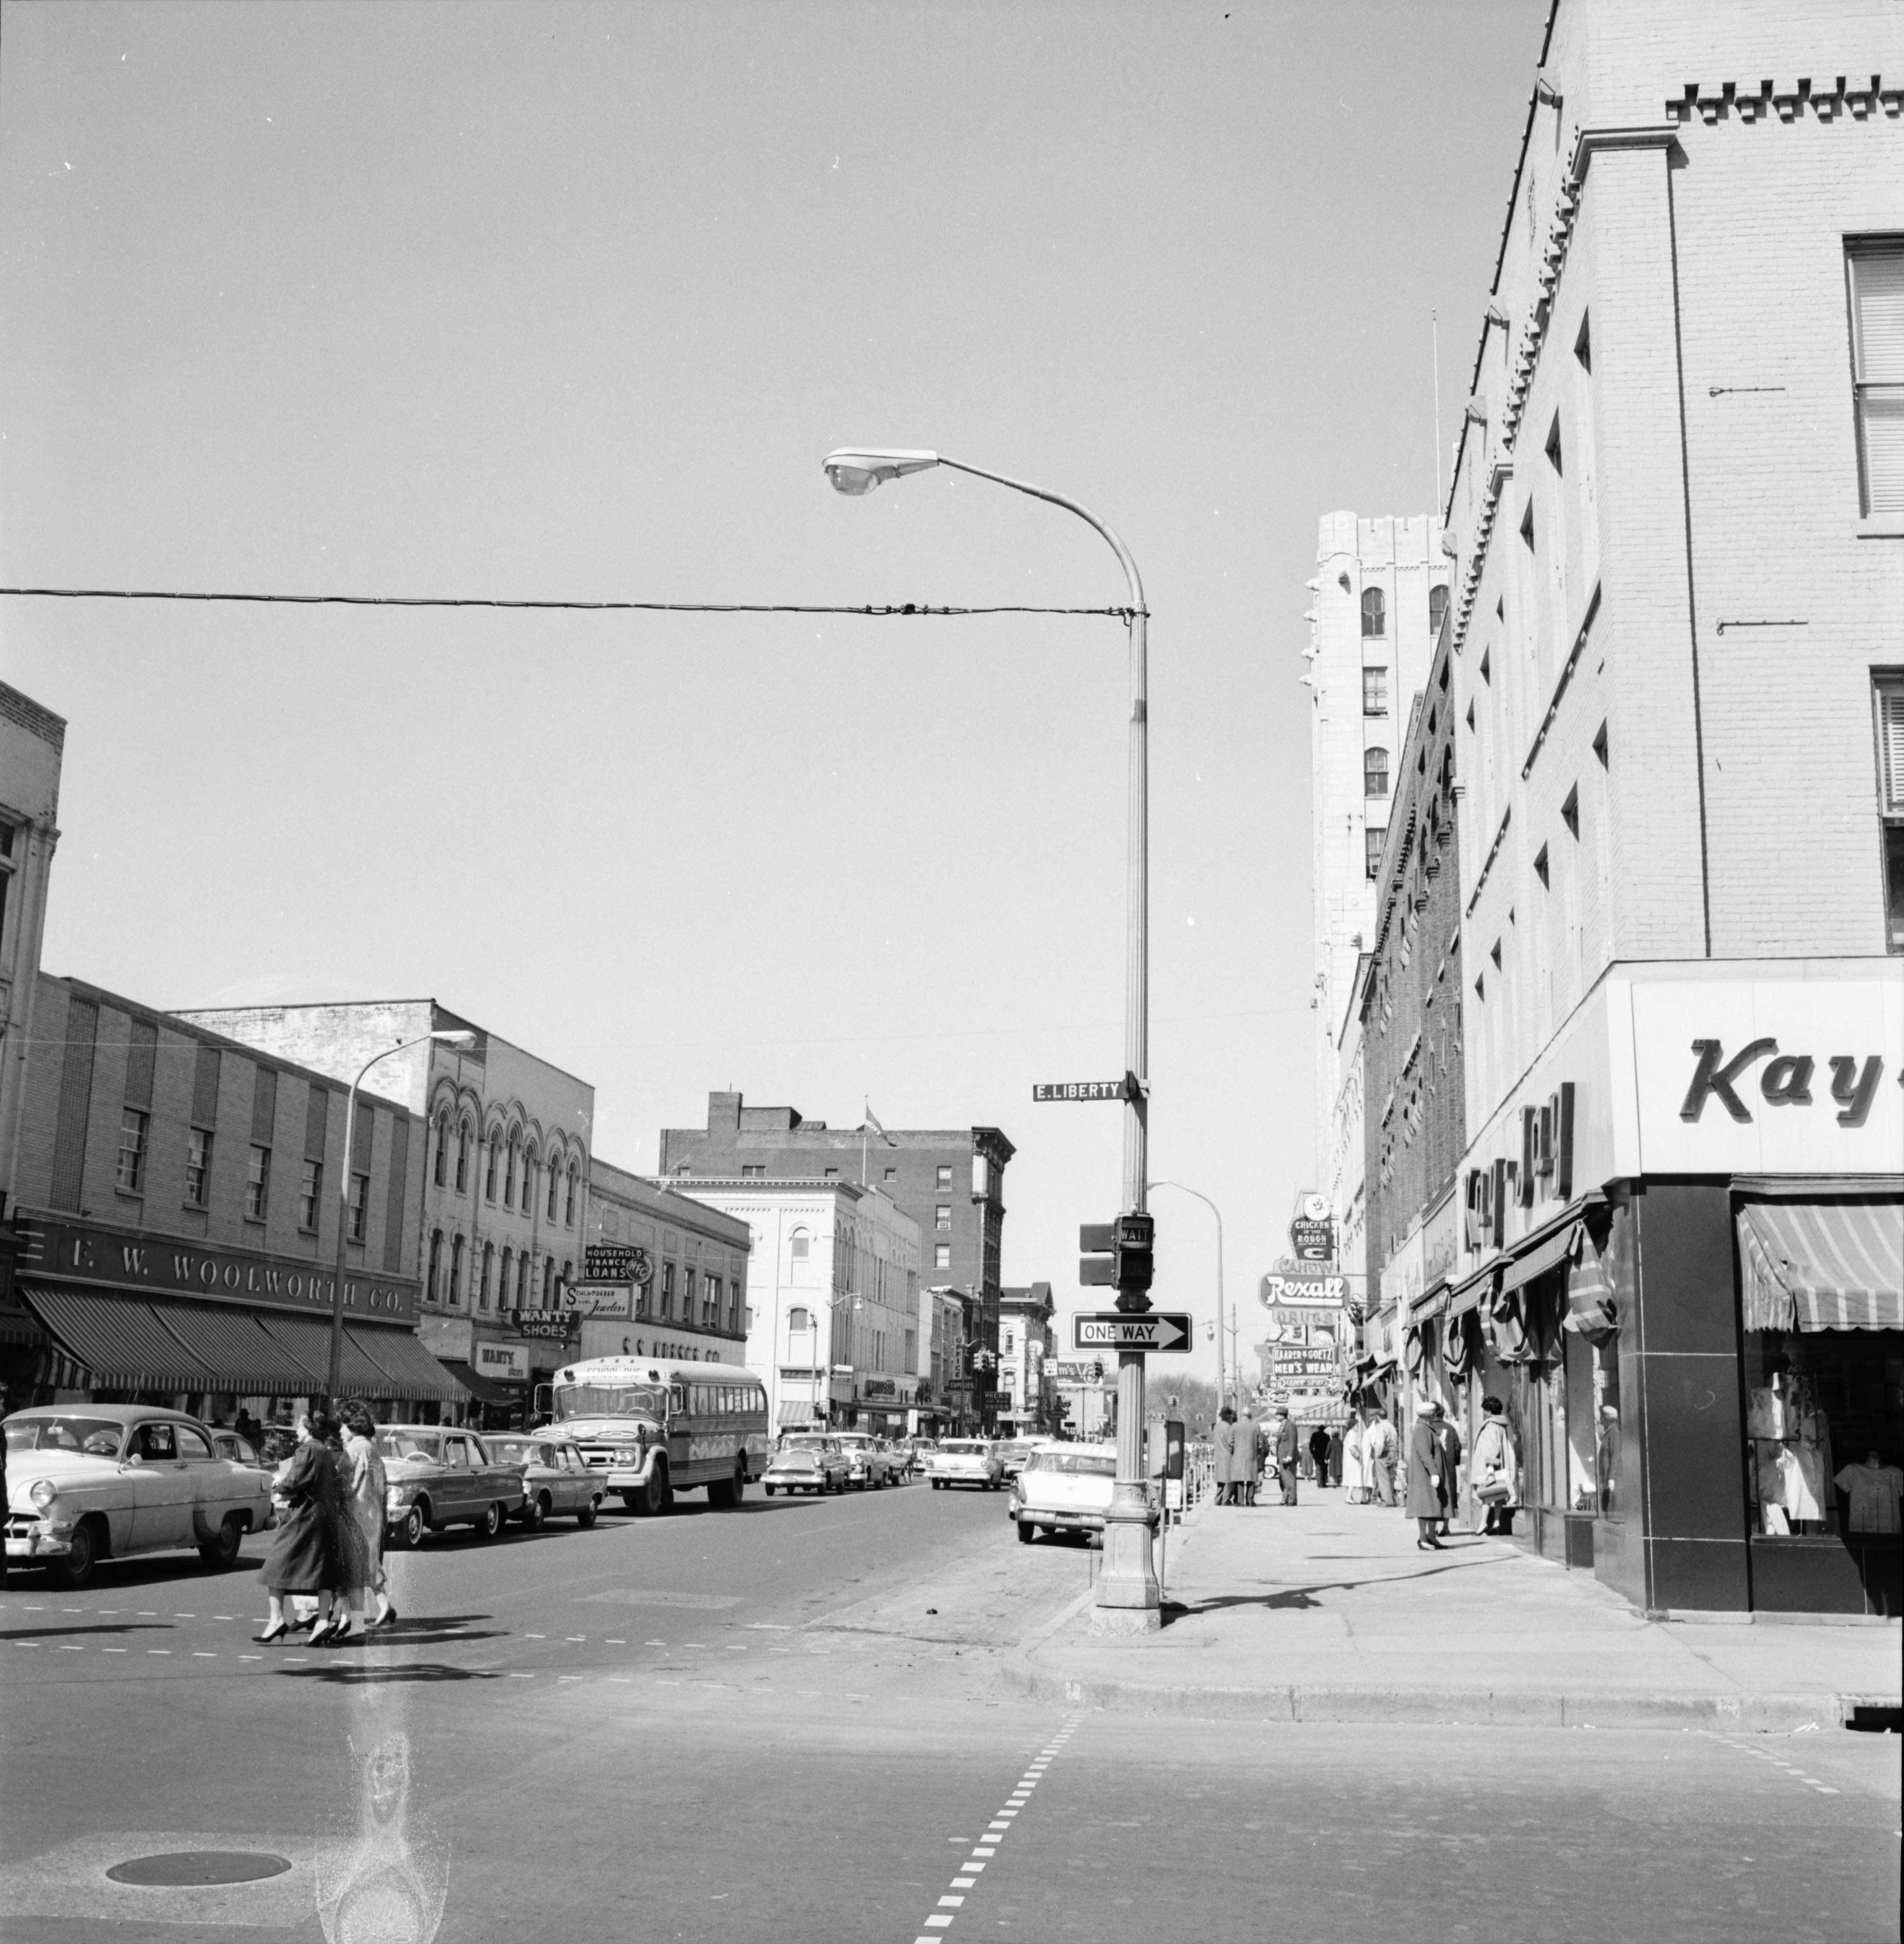 New Street Light installed on trial basis at Main and Liberty, April 1961 image